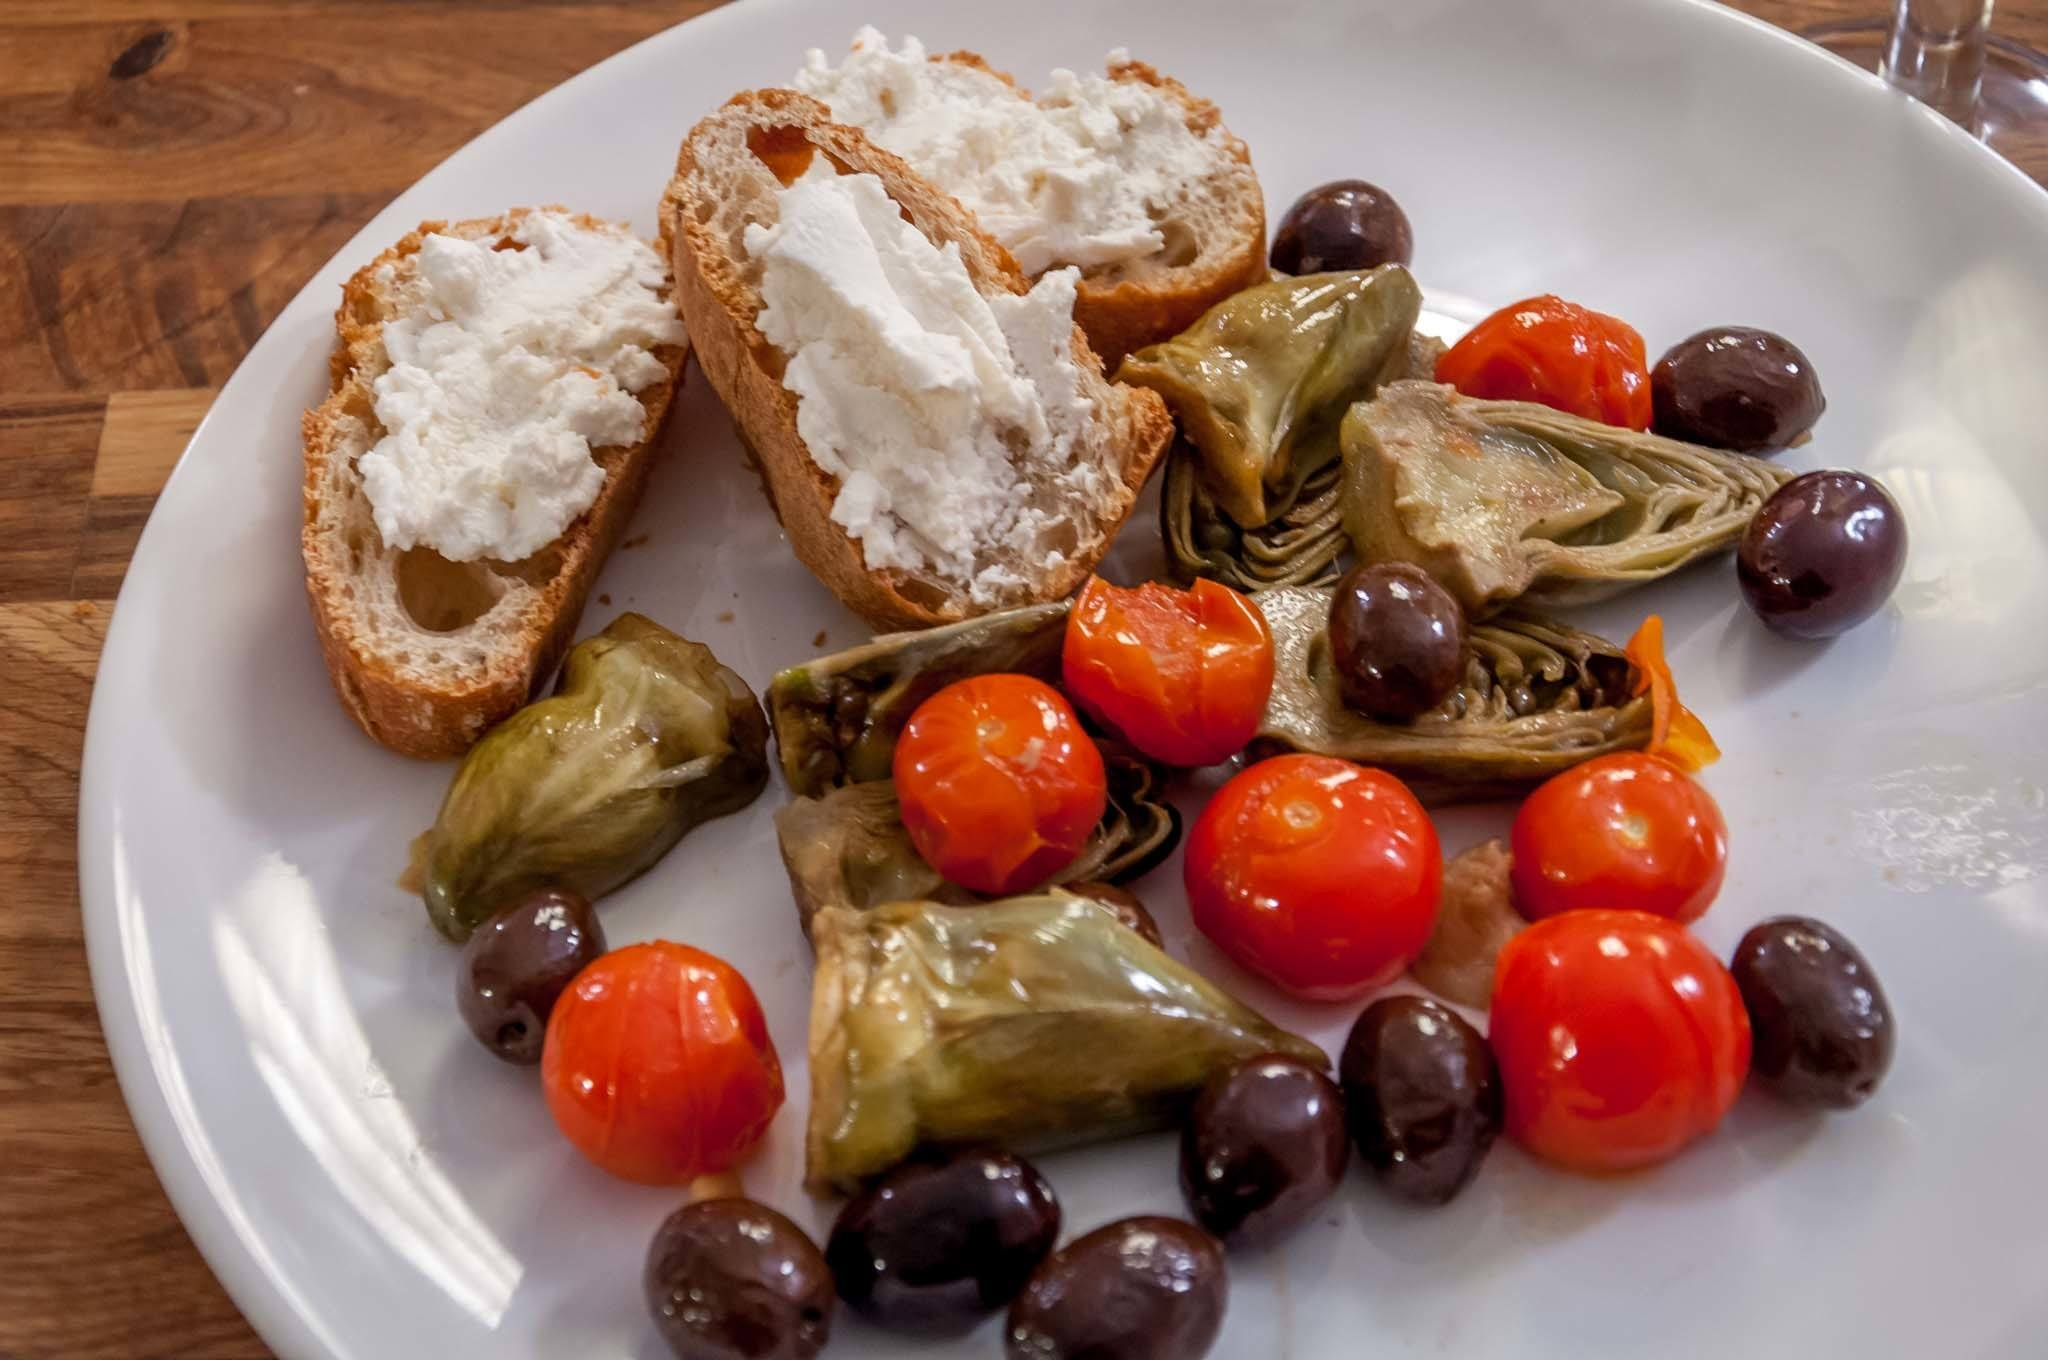 Artichokes, olives, tomatoes, and French bread